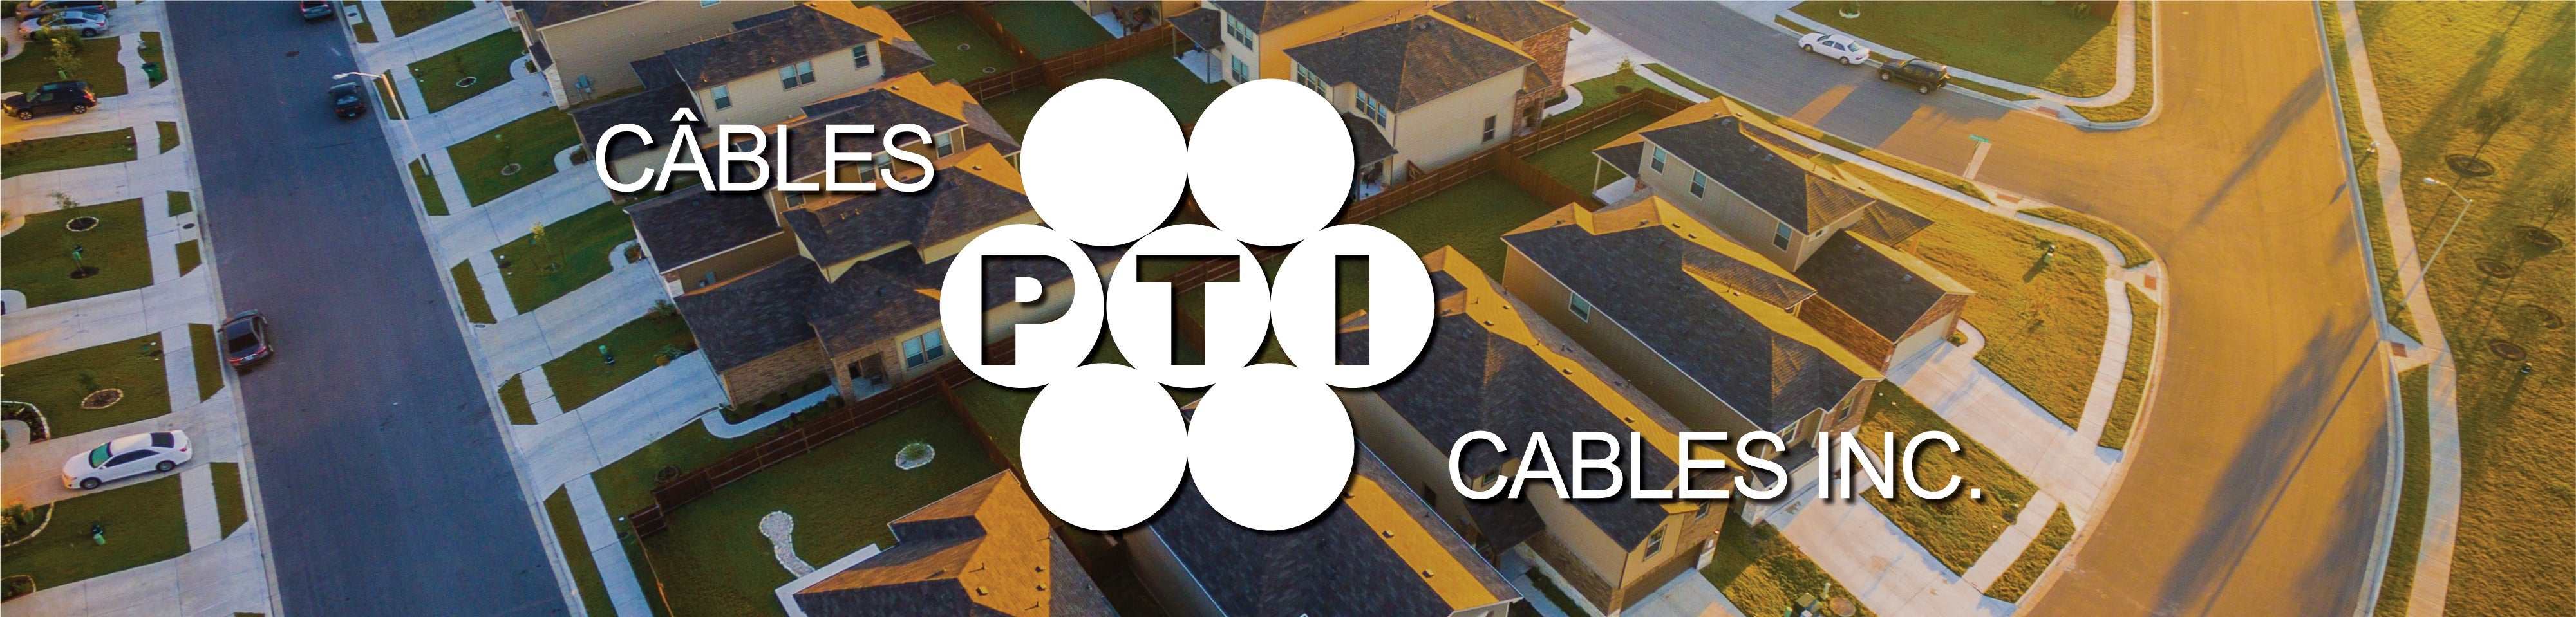 Featured Suppliers Banner Image - PTI Cables.jpg